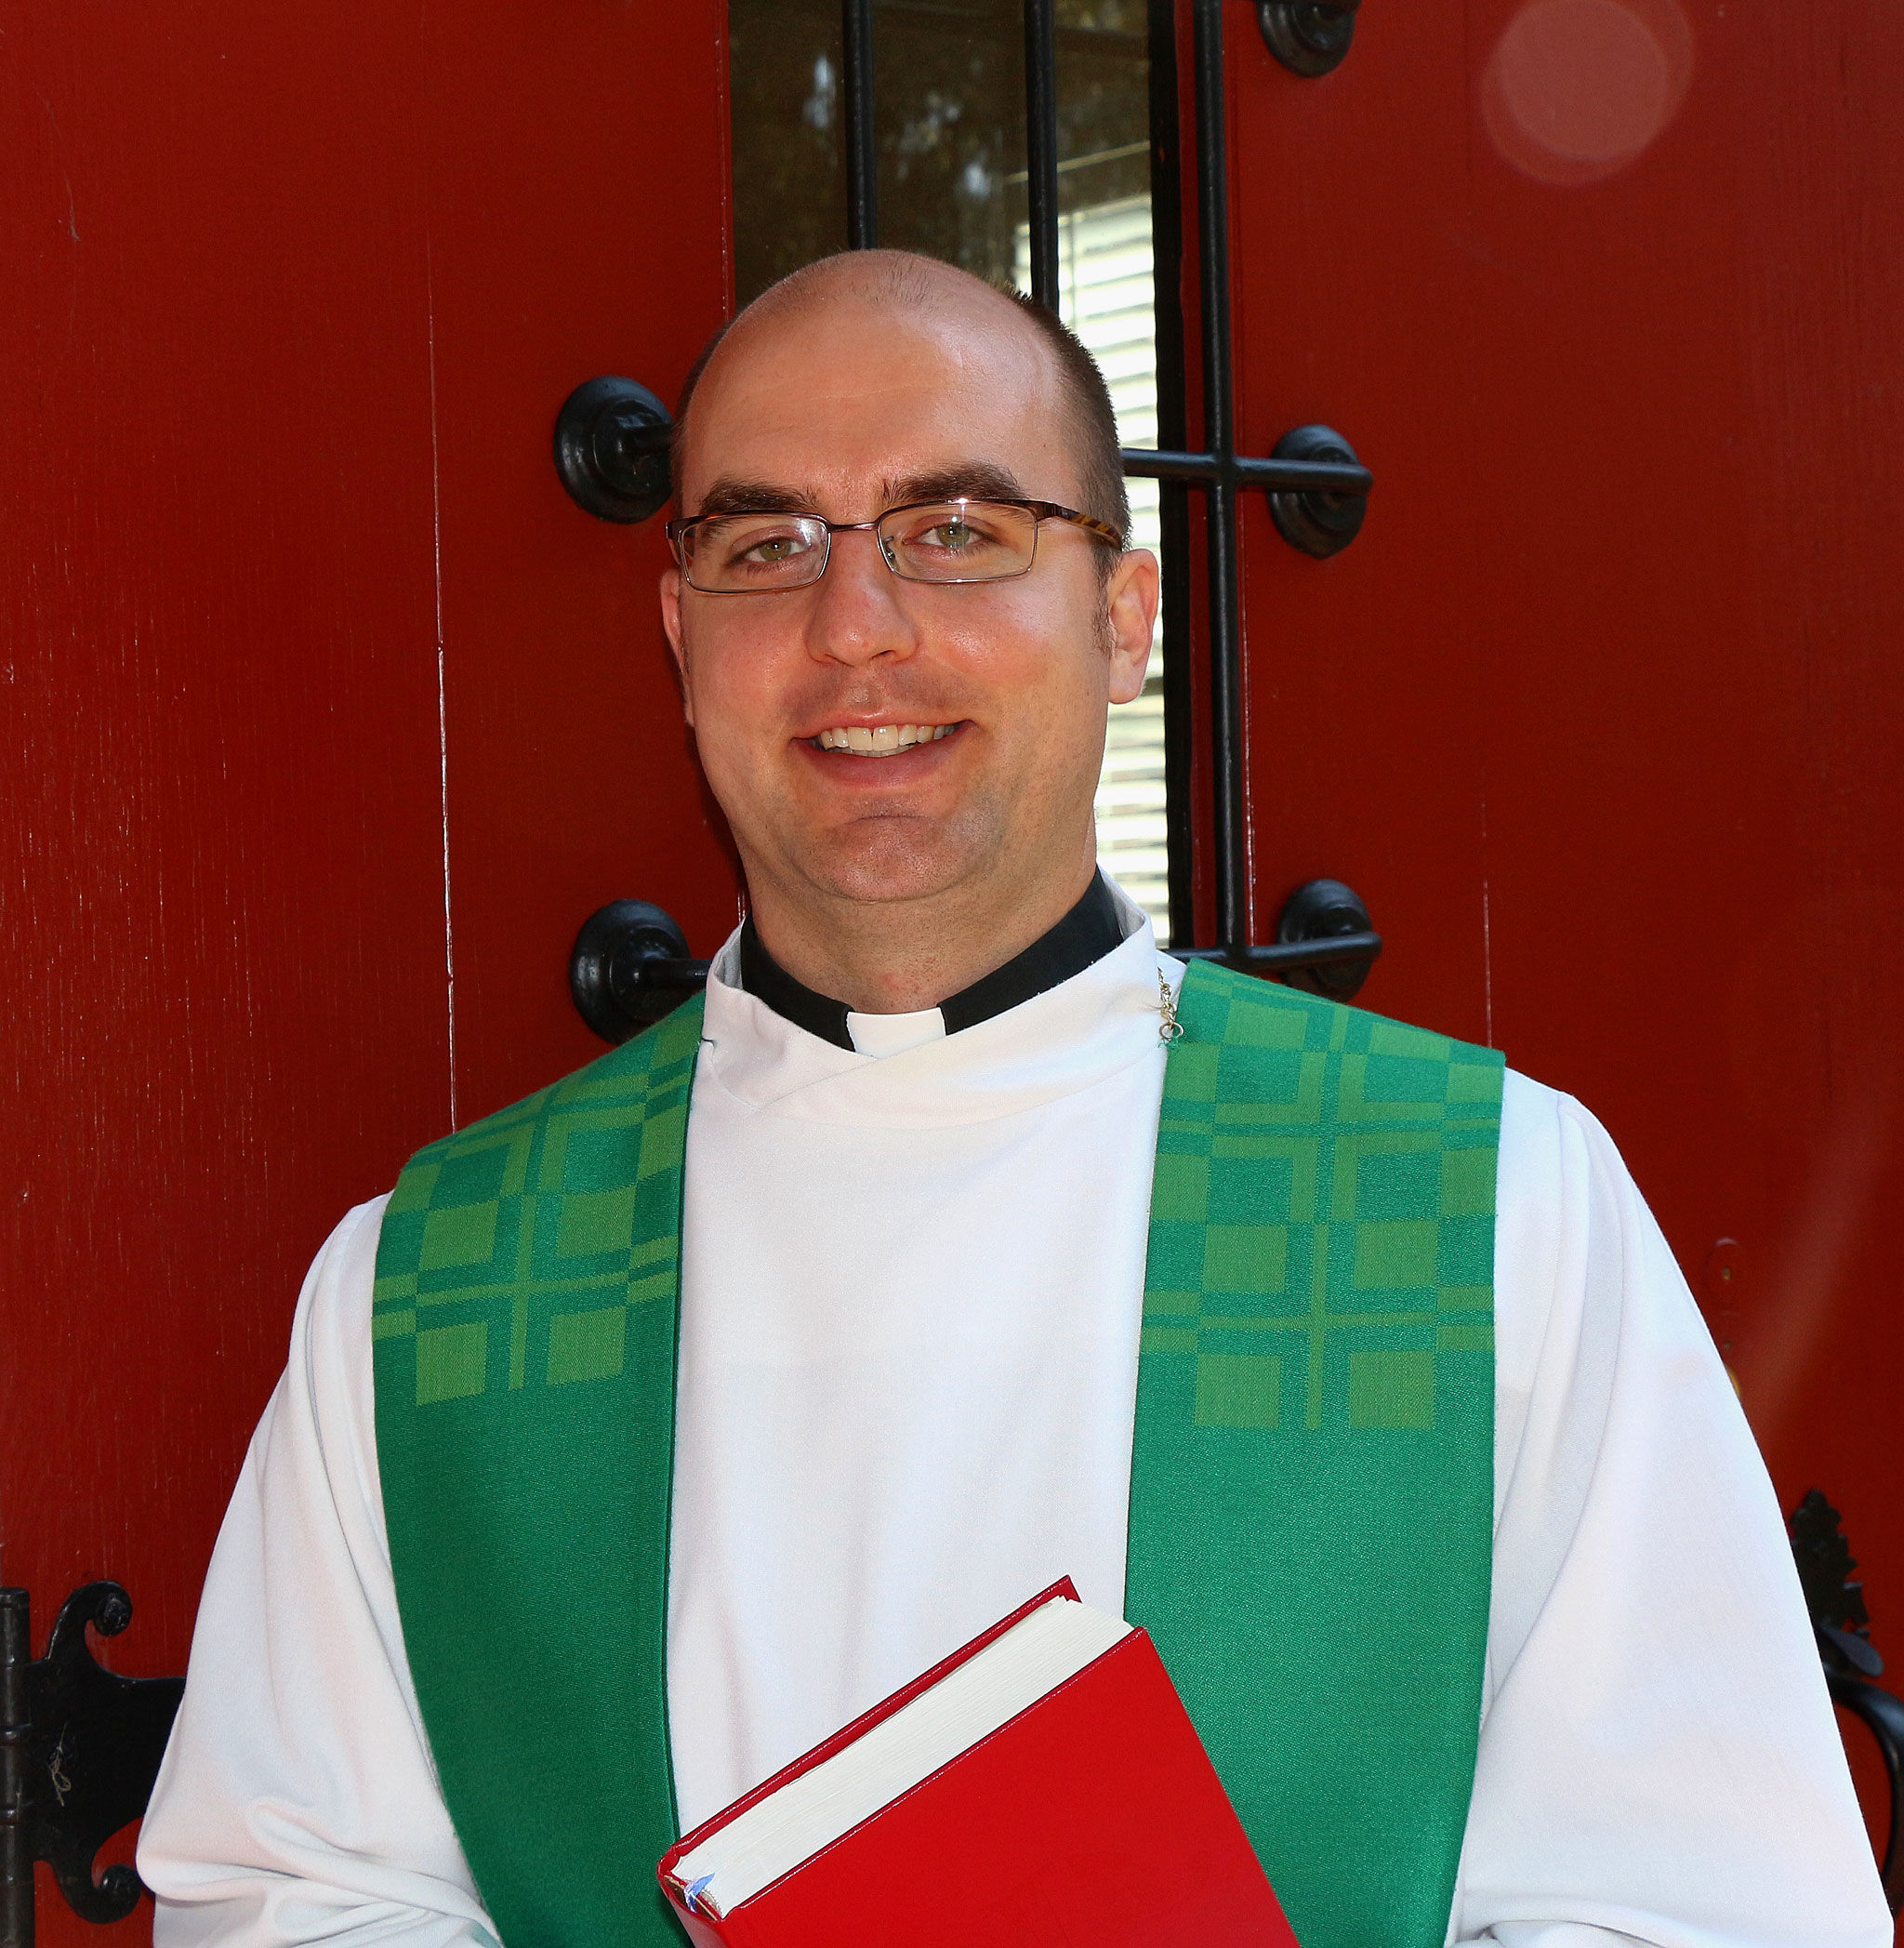 Macedonia Lutheran Church Pastor Adam Miller-Stubbendick